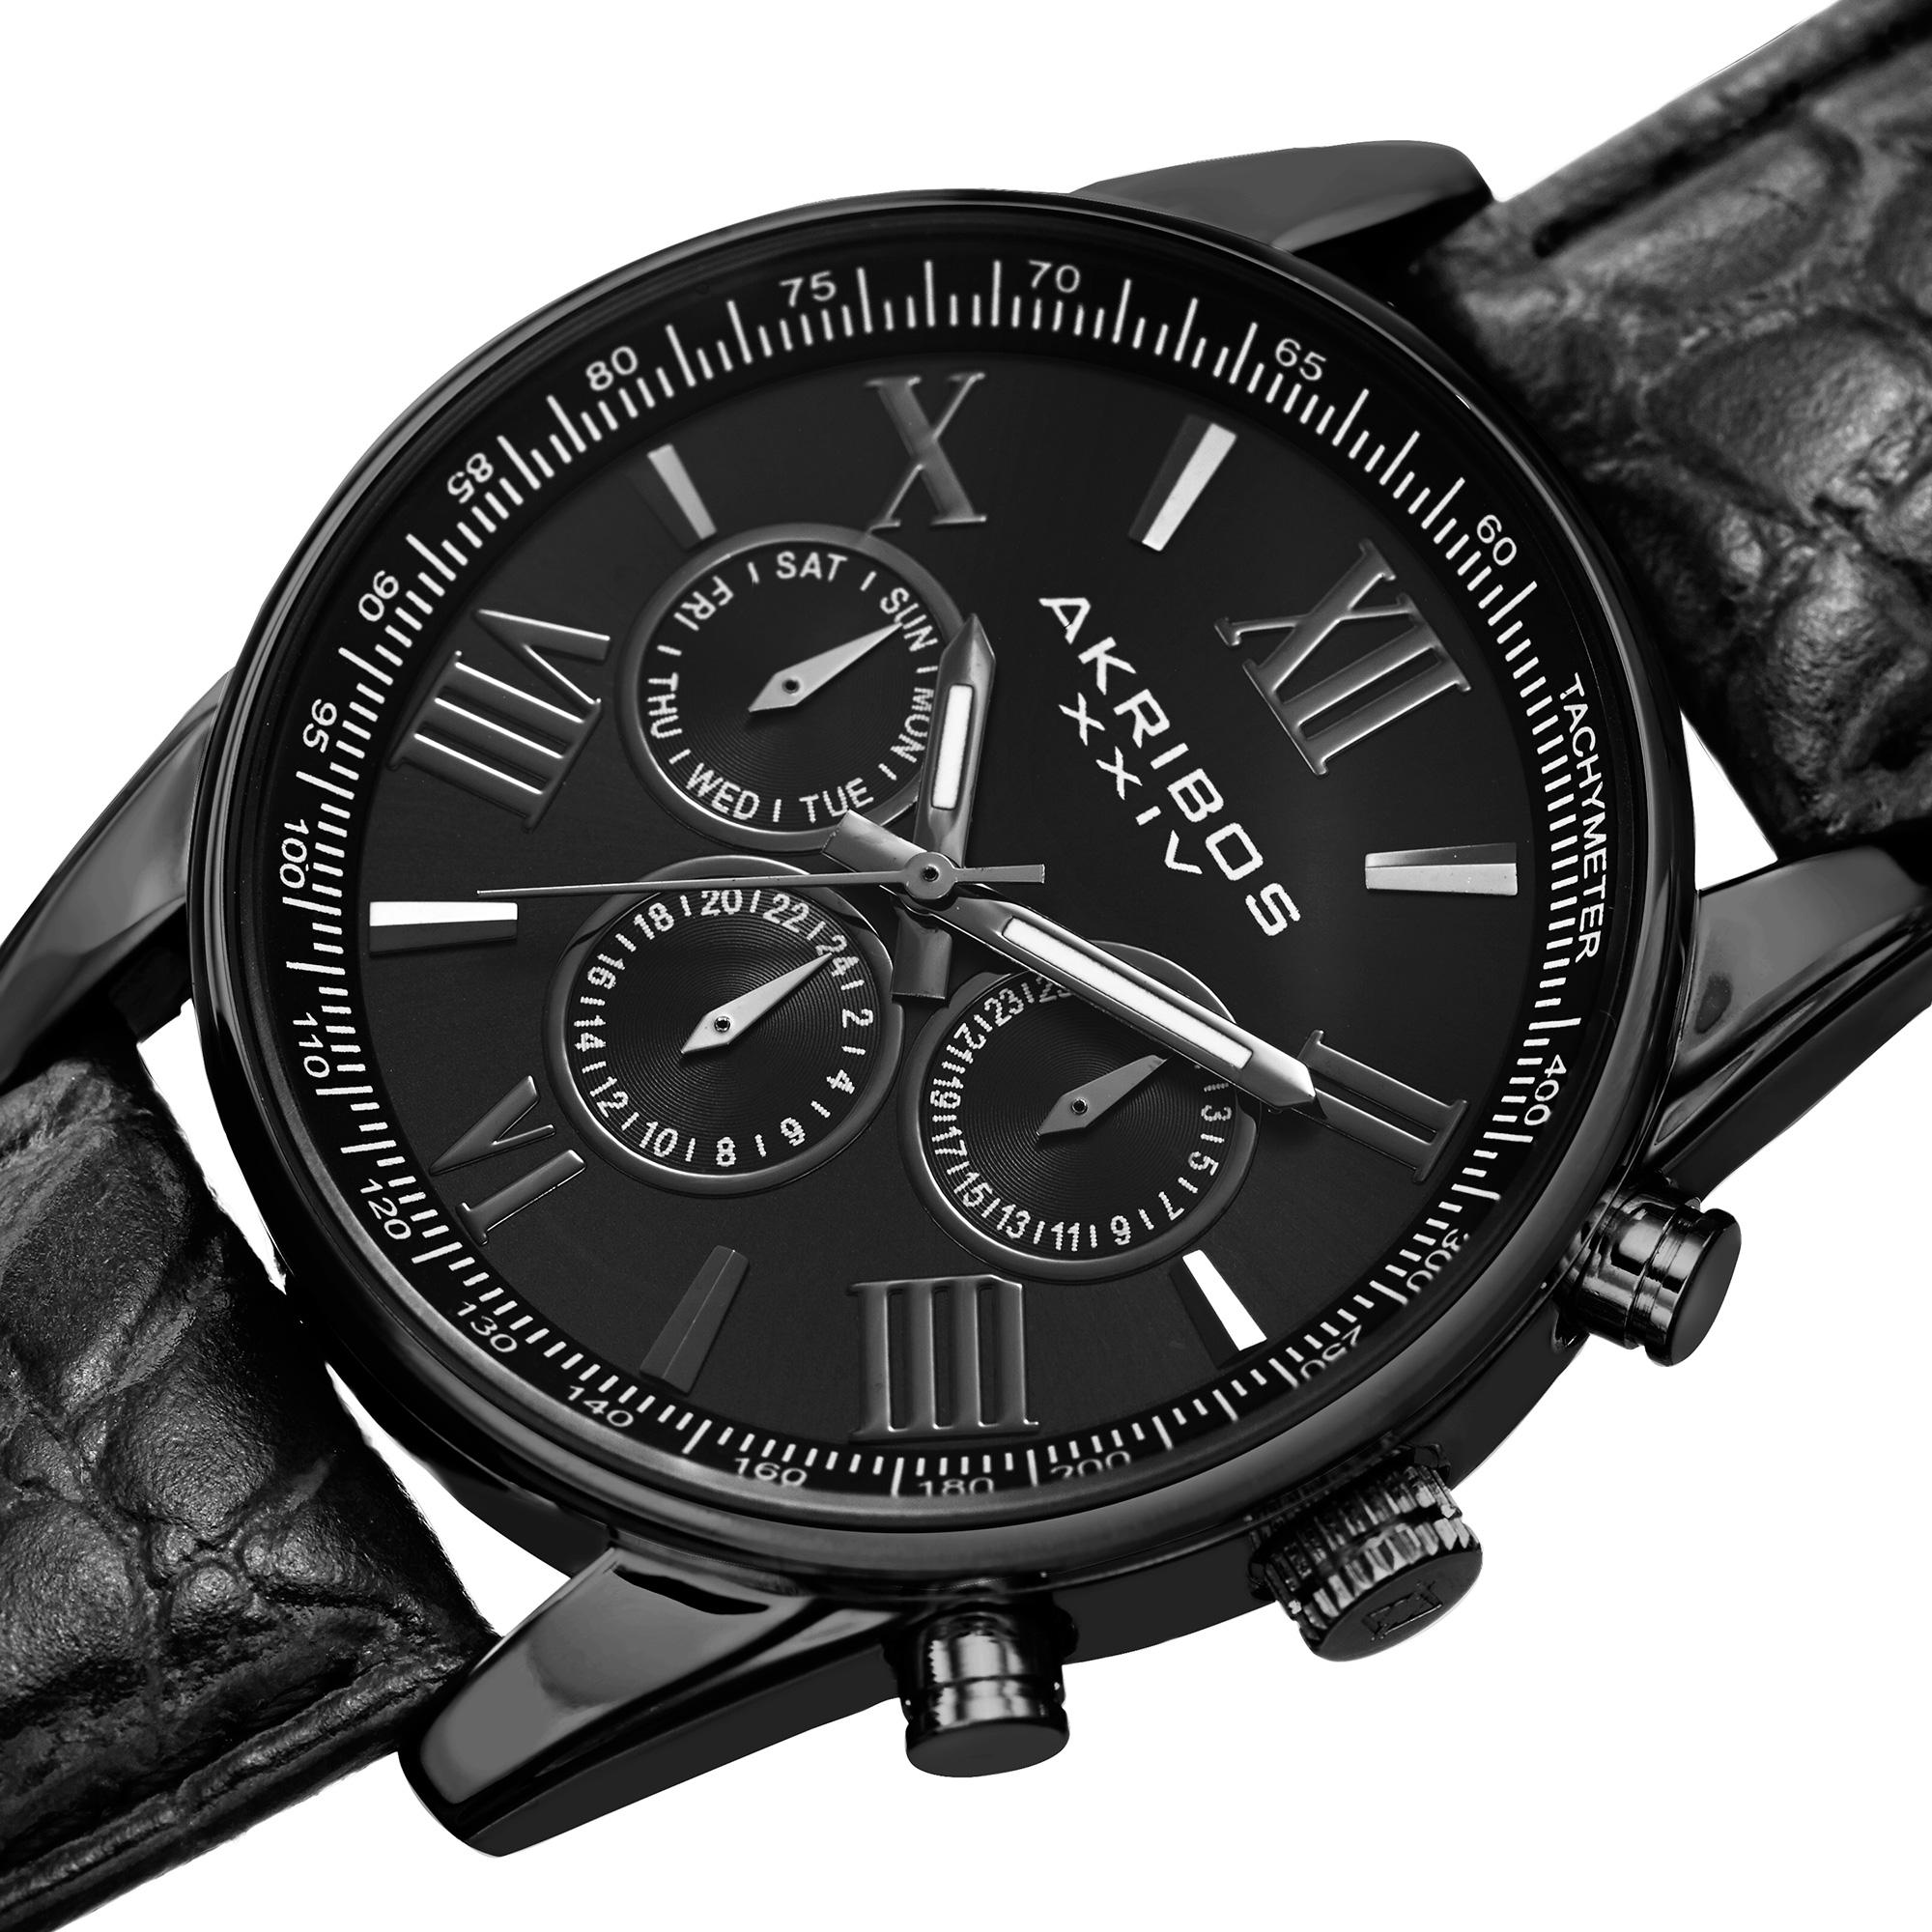 leather watch black whiteblack giacomo watches white design calendario